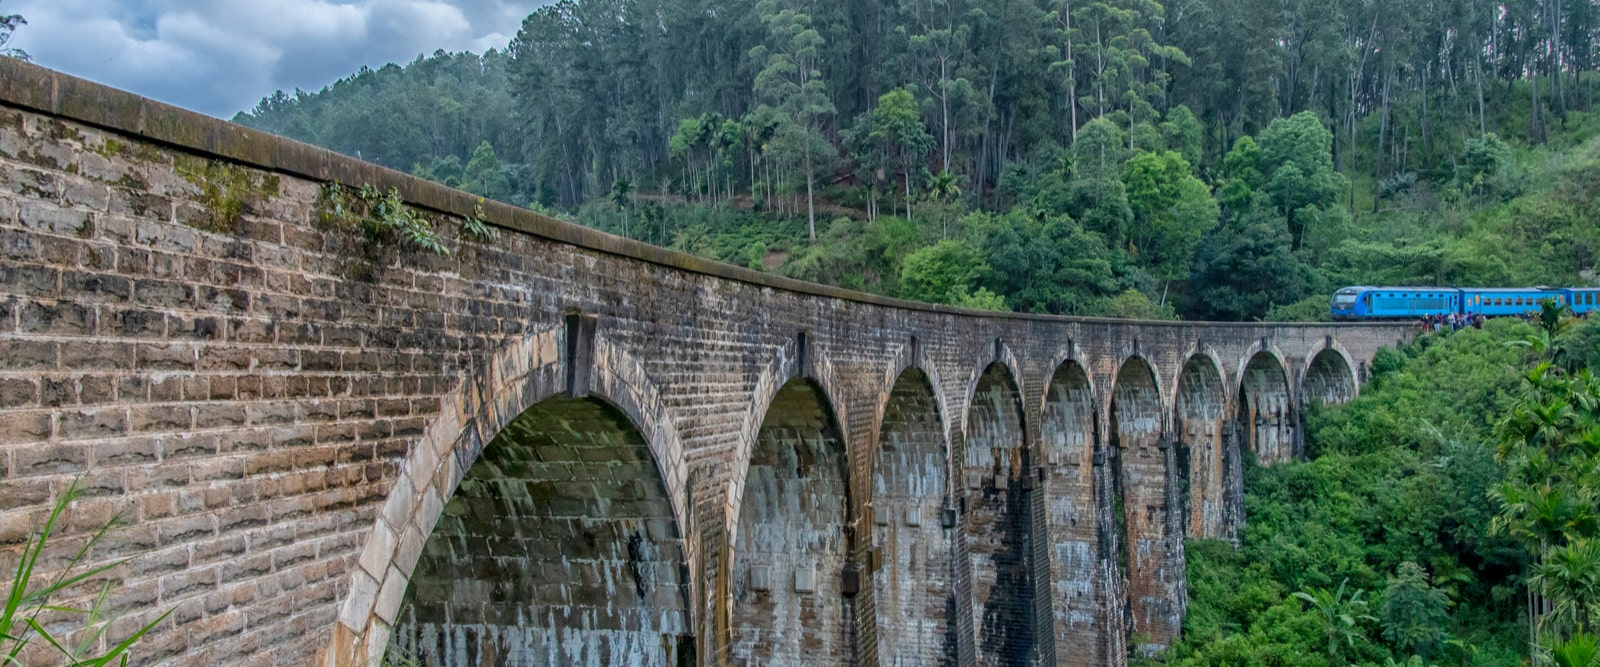 The 7-hour train trip Ella to Kandy takes you through green and lush tea plantation. The small and charming Ella Train Station. Taking the train to or from Ella is the most famous stretch of train travel in Sri Lanka, and is nearly a tourist attraction in itself